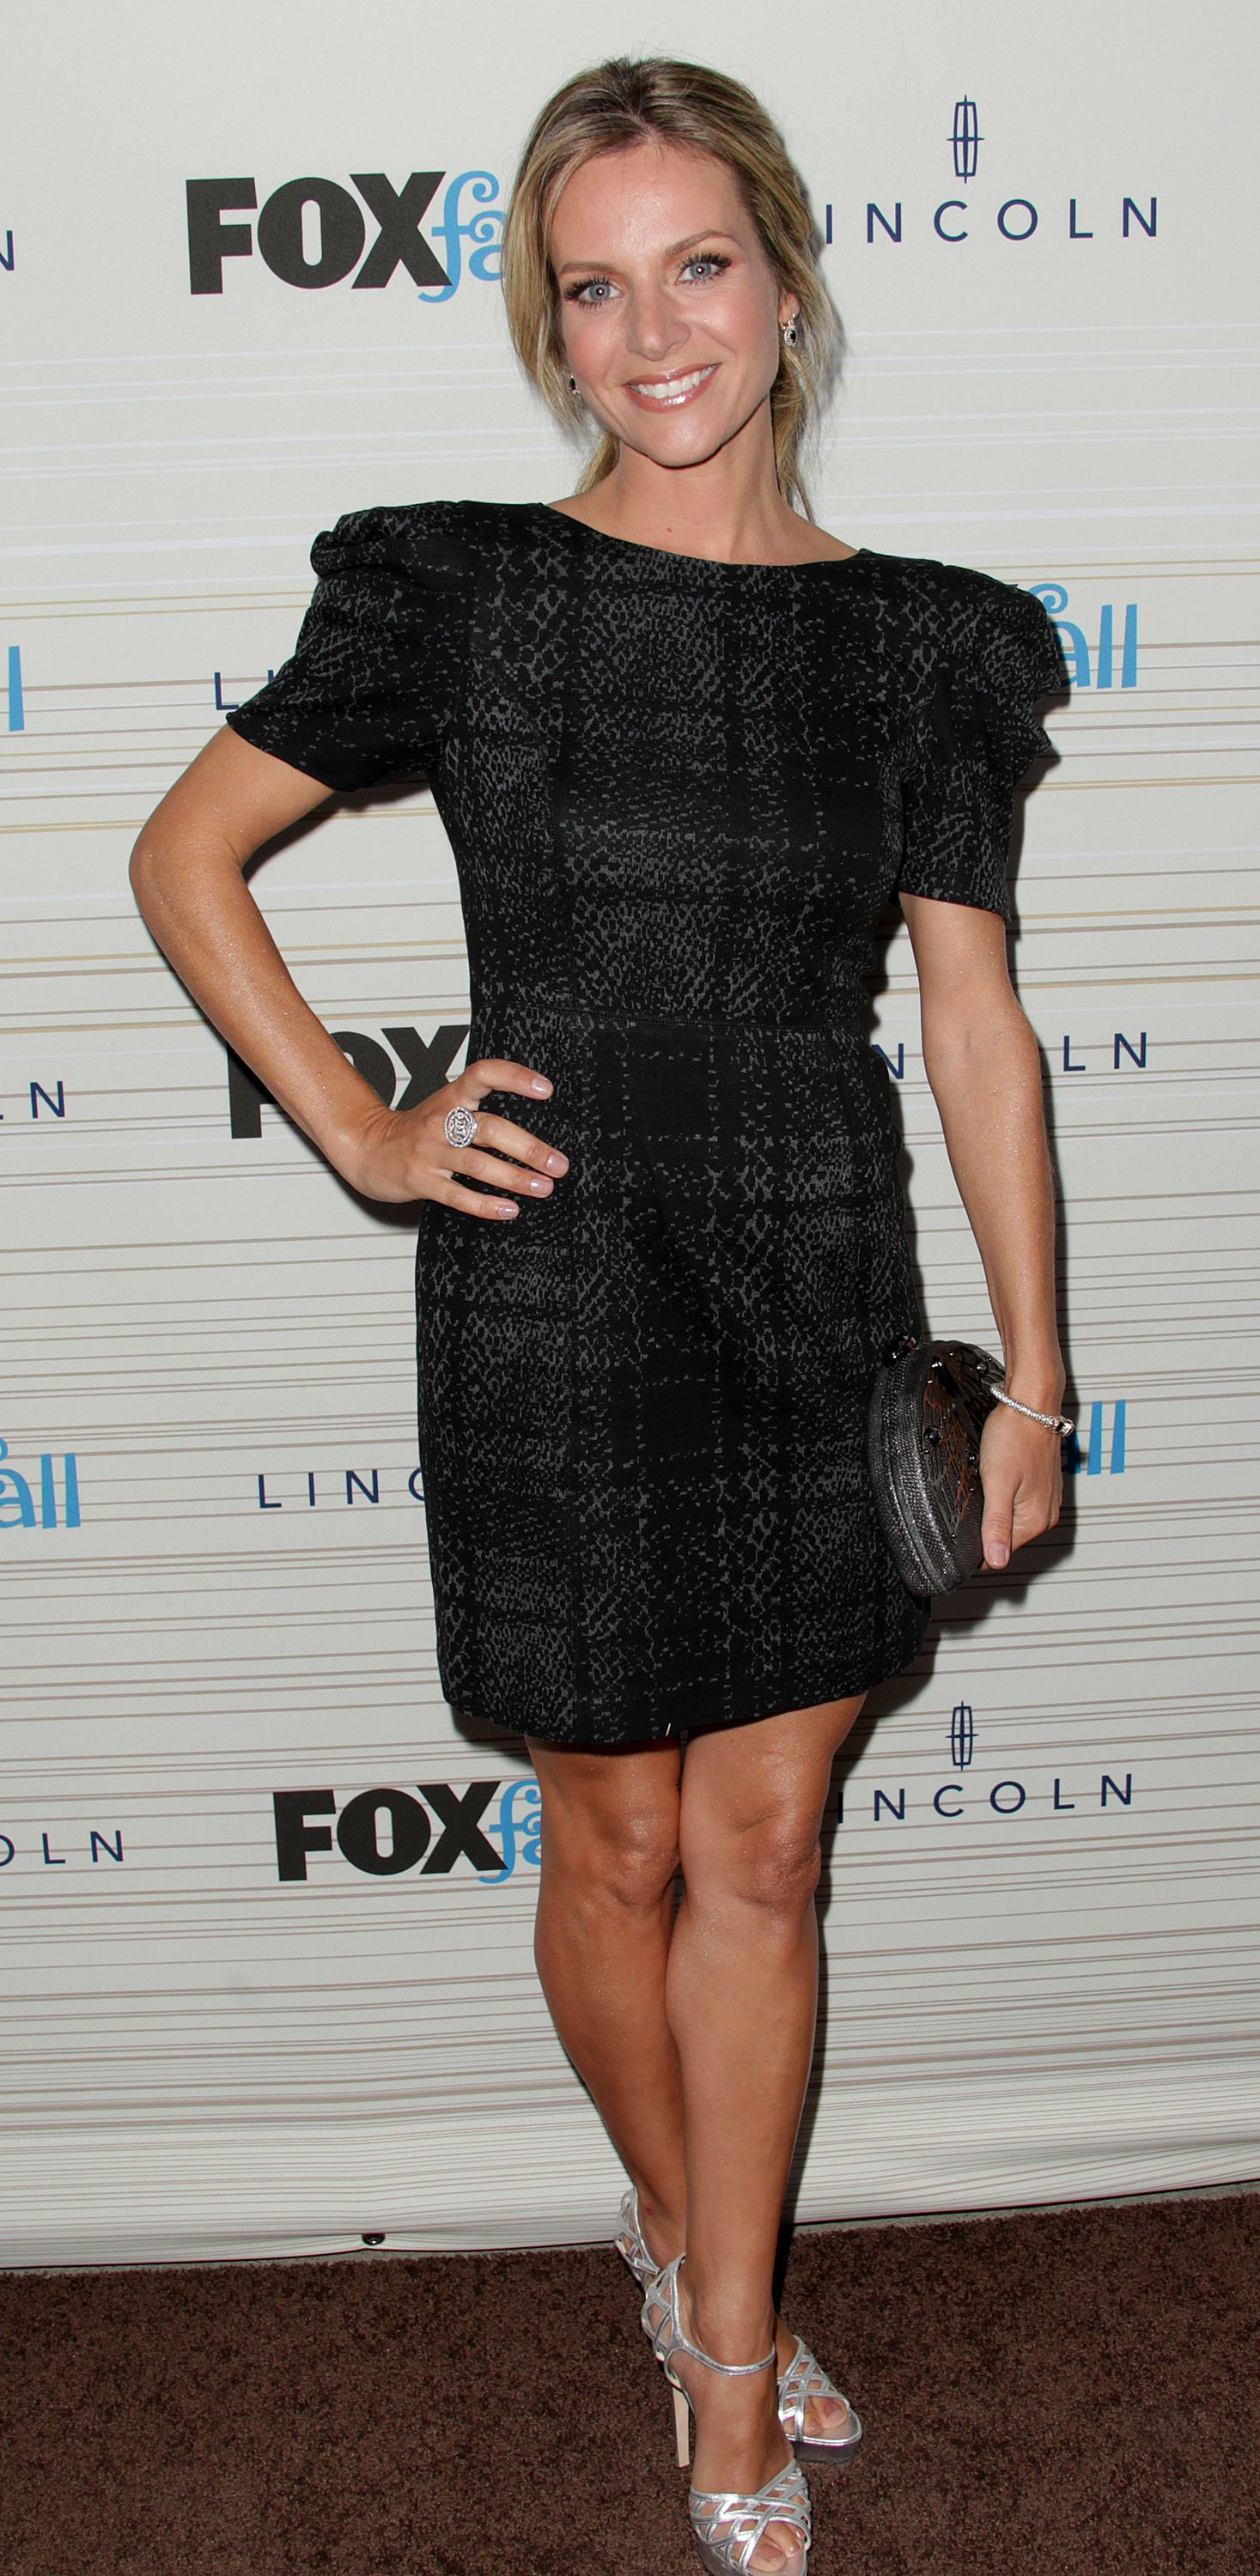 Jessalyn Gilsig attends Fox's Fall Eco-Casino party at Boa on September 13, 2010 in West Hollywood, California. | Photo: GettyImages